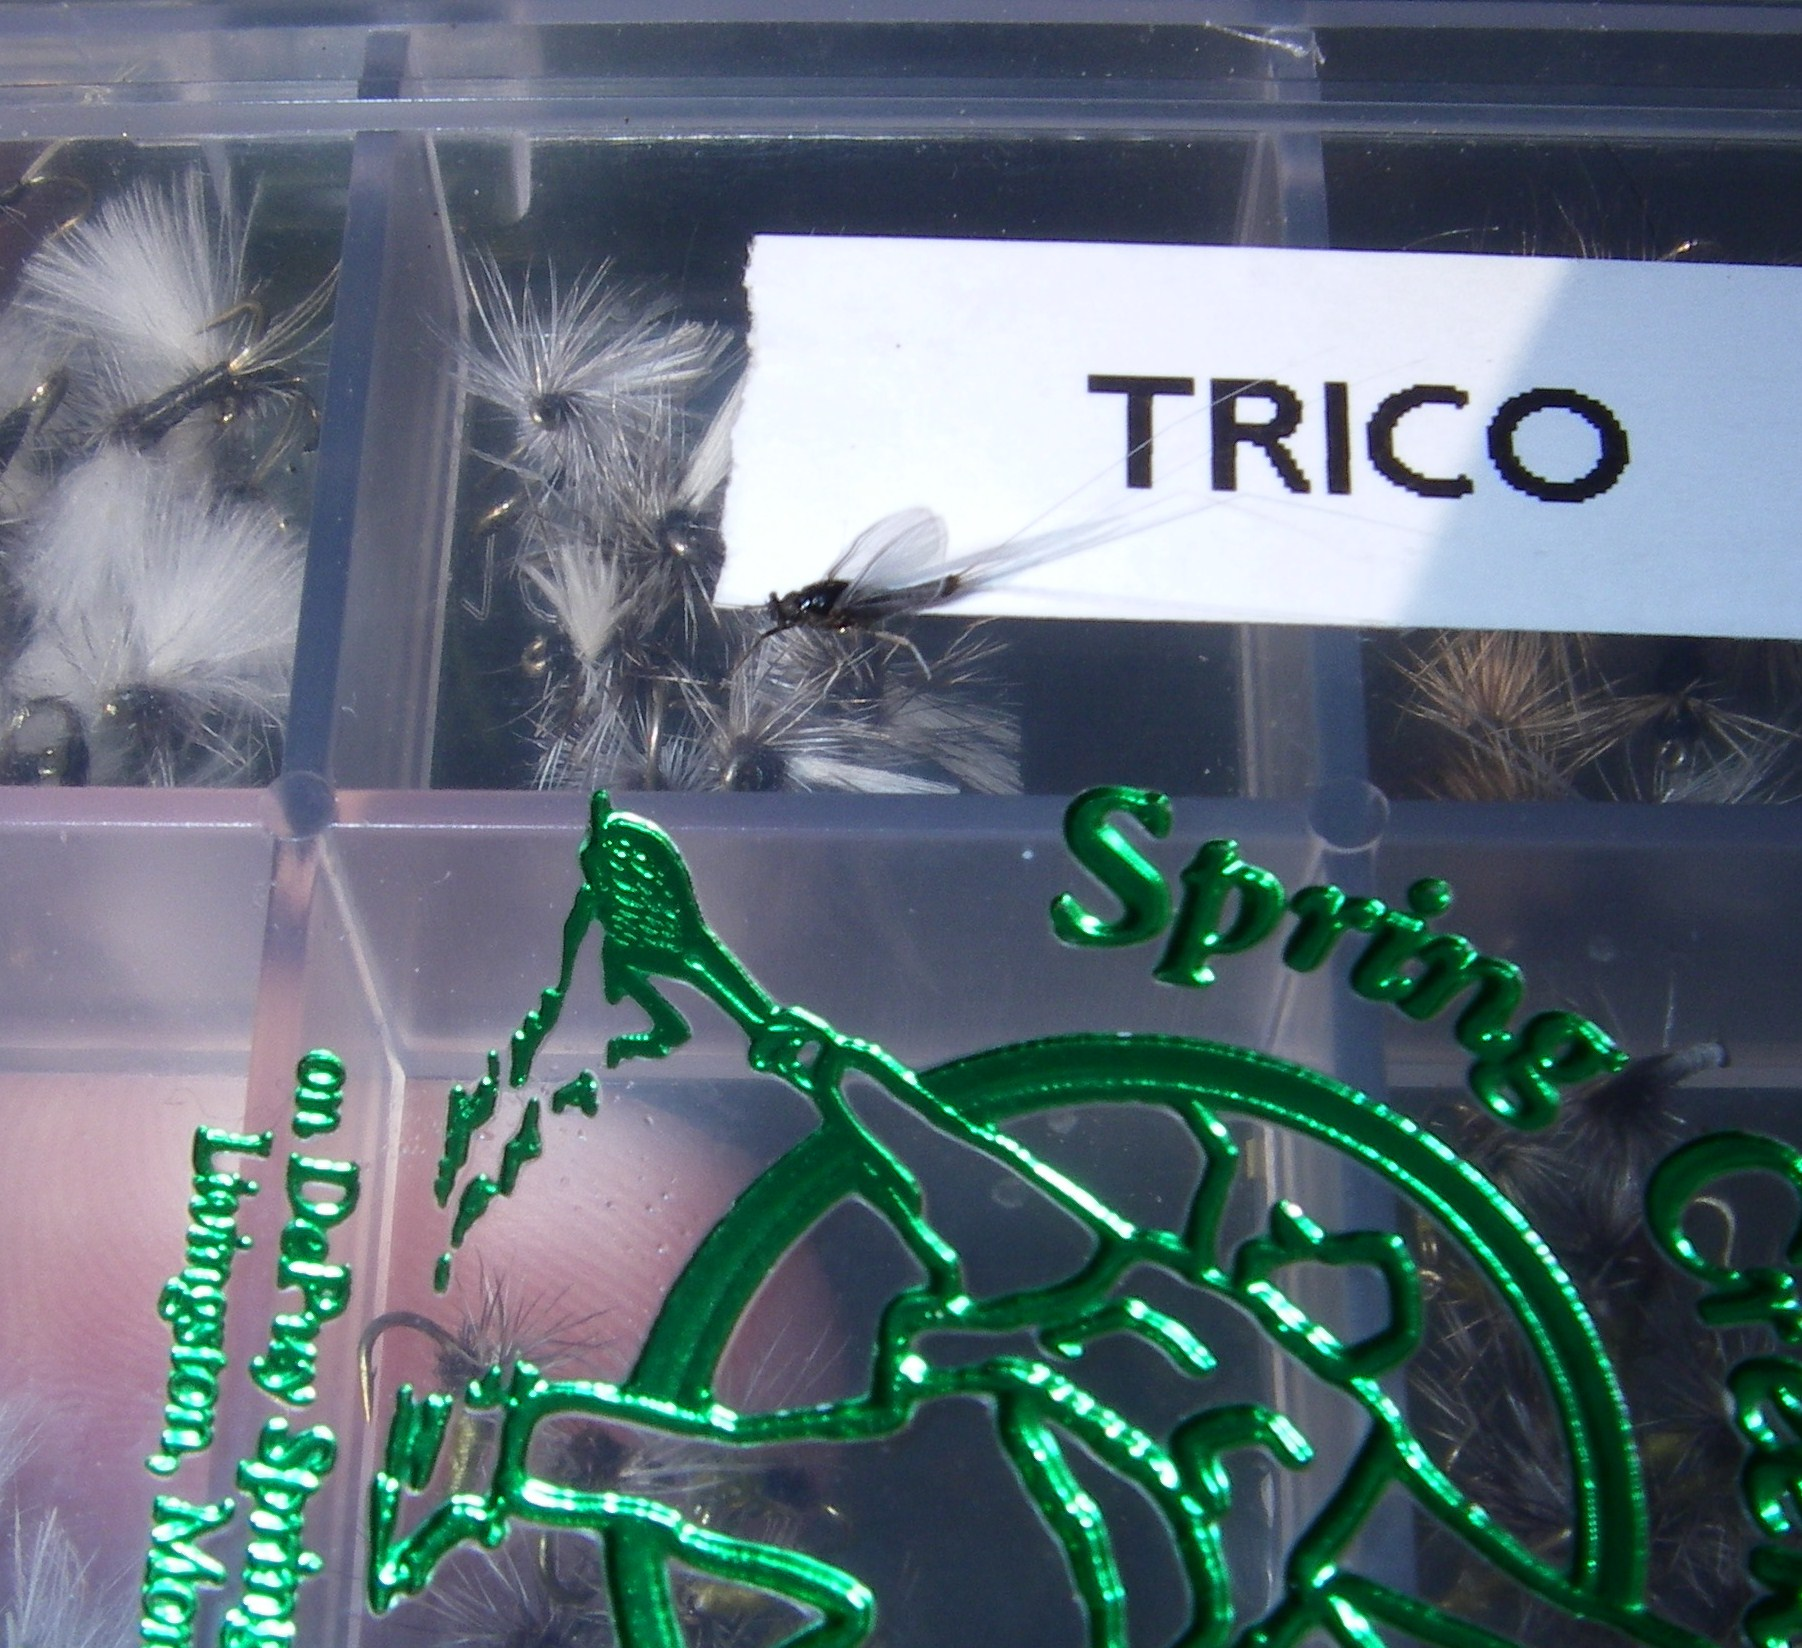 which fly do i need?